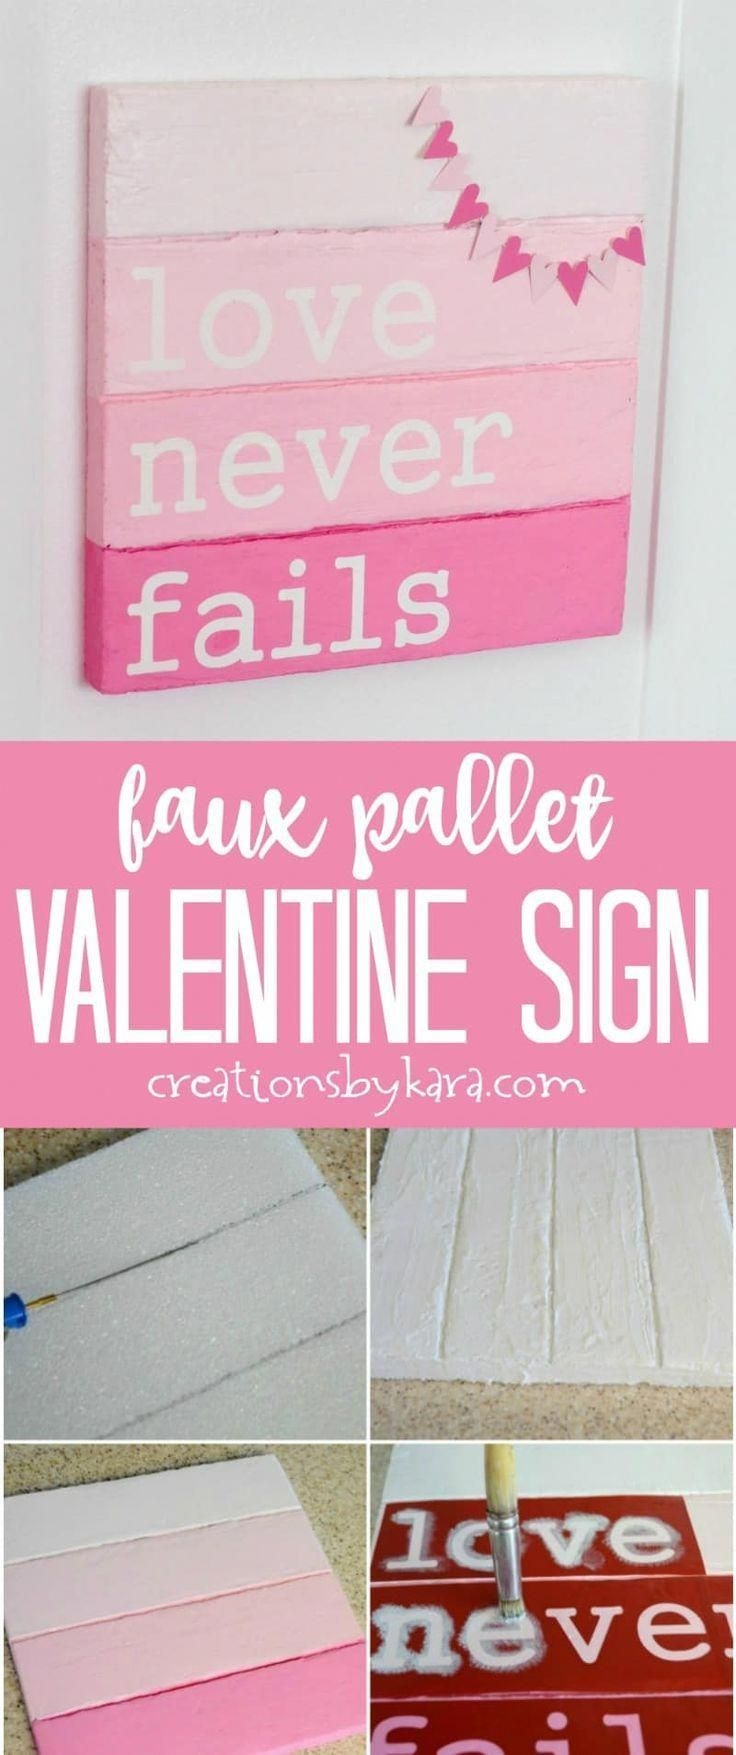 Inspiring Diy Outdoor Decorations Ideas For Valentine'S Day13